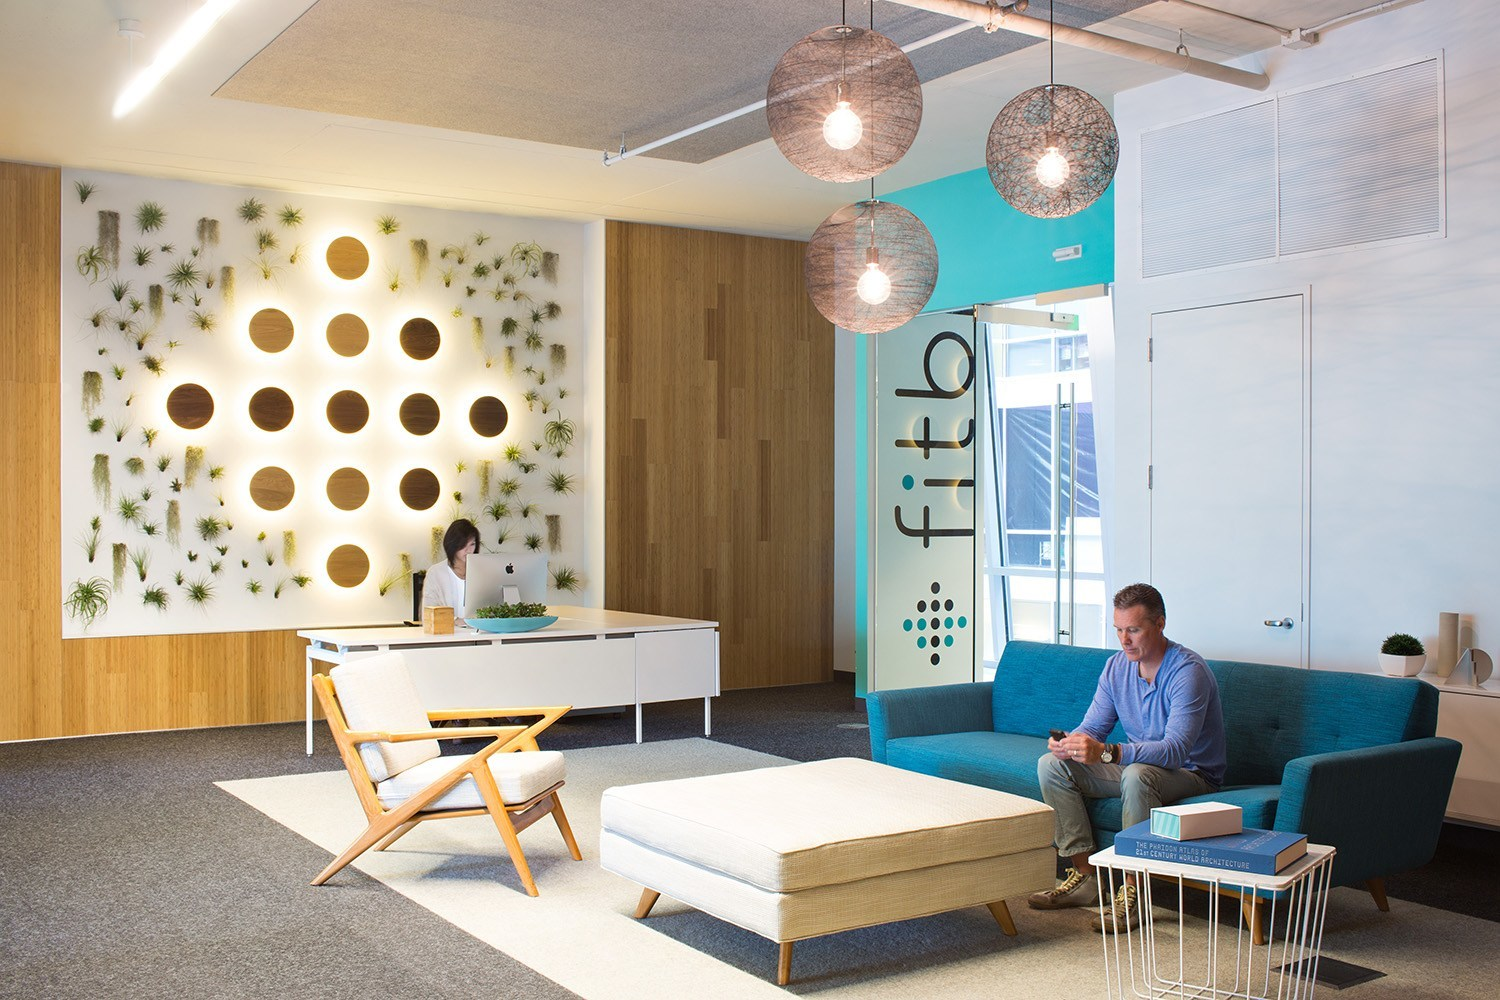 An Exclusive Look Inside Fitbit's Cool San Francisco Office